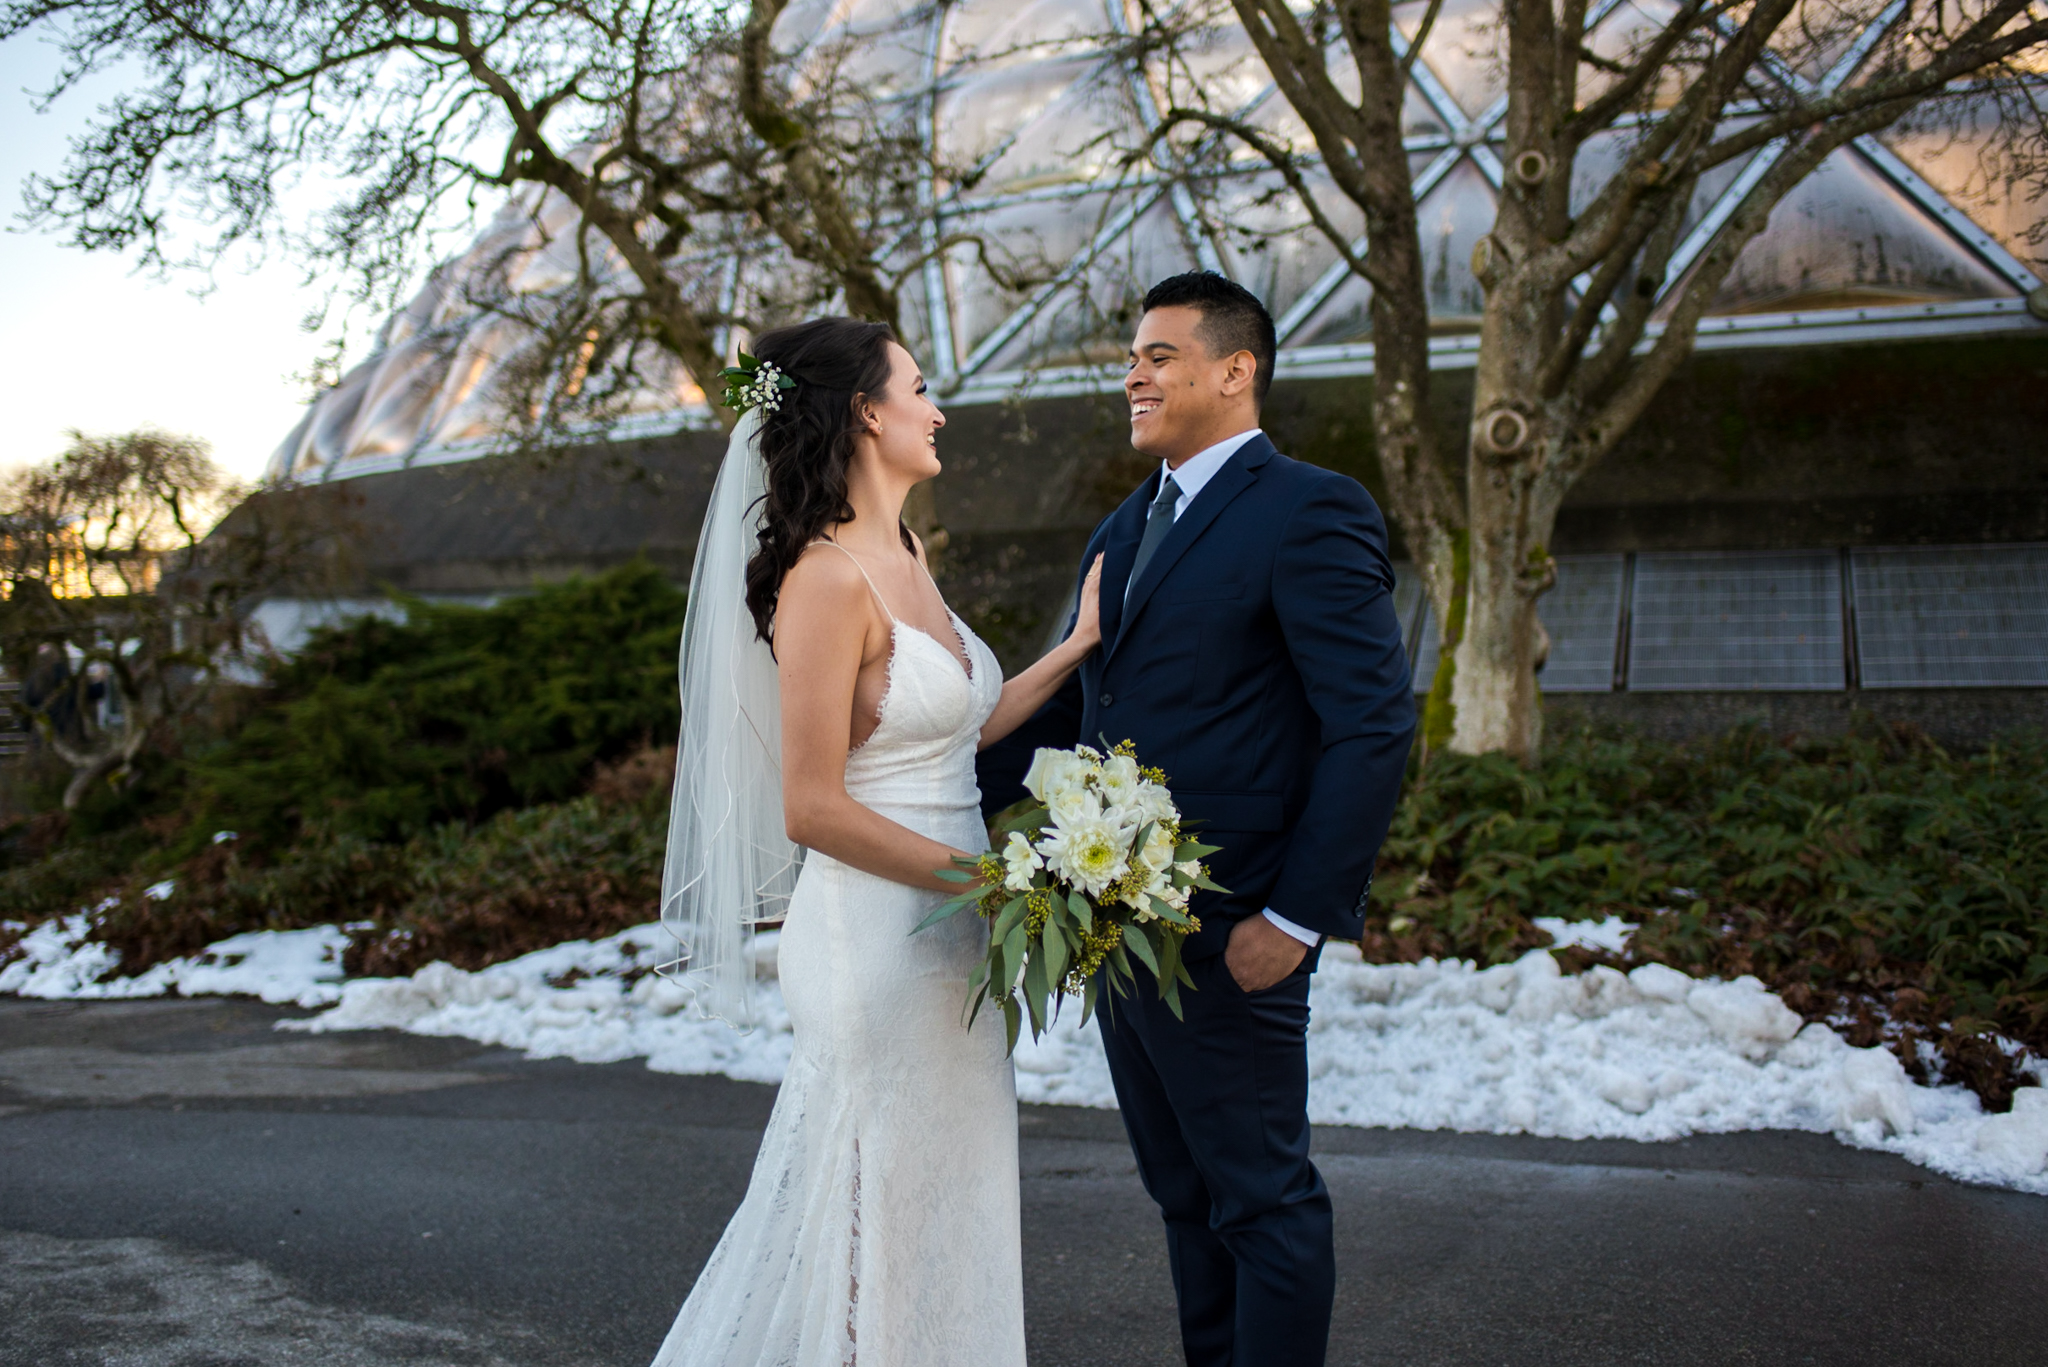 Queen Elizabeth Park Wedding Photographer-12.jpg